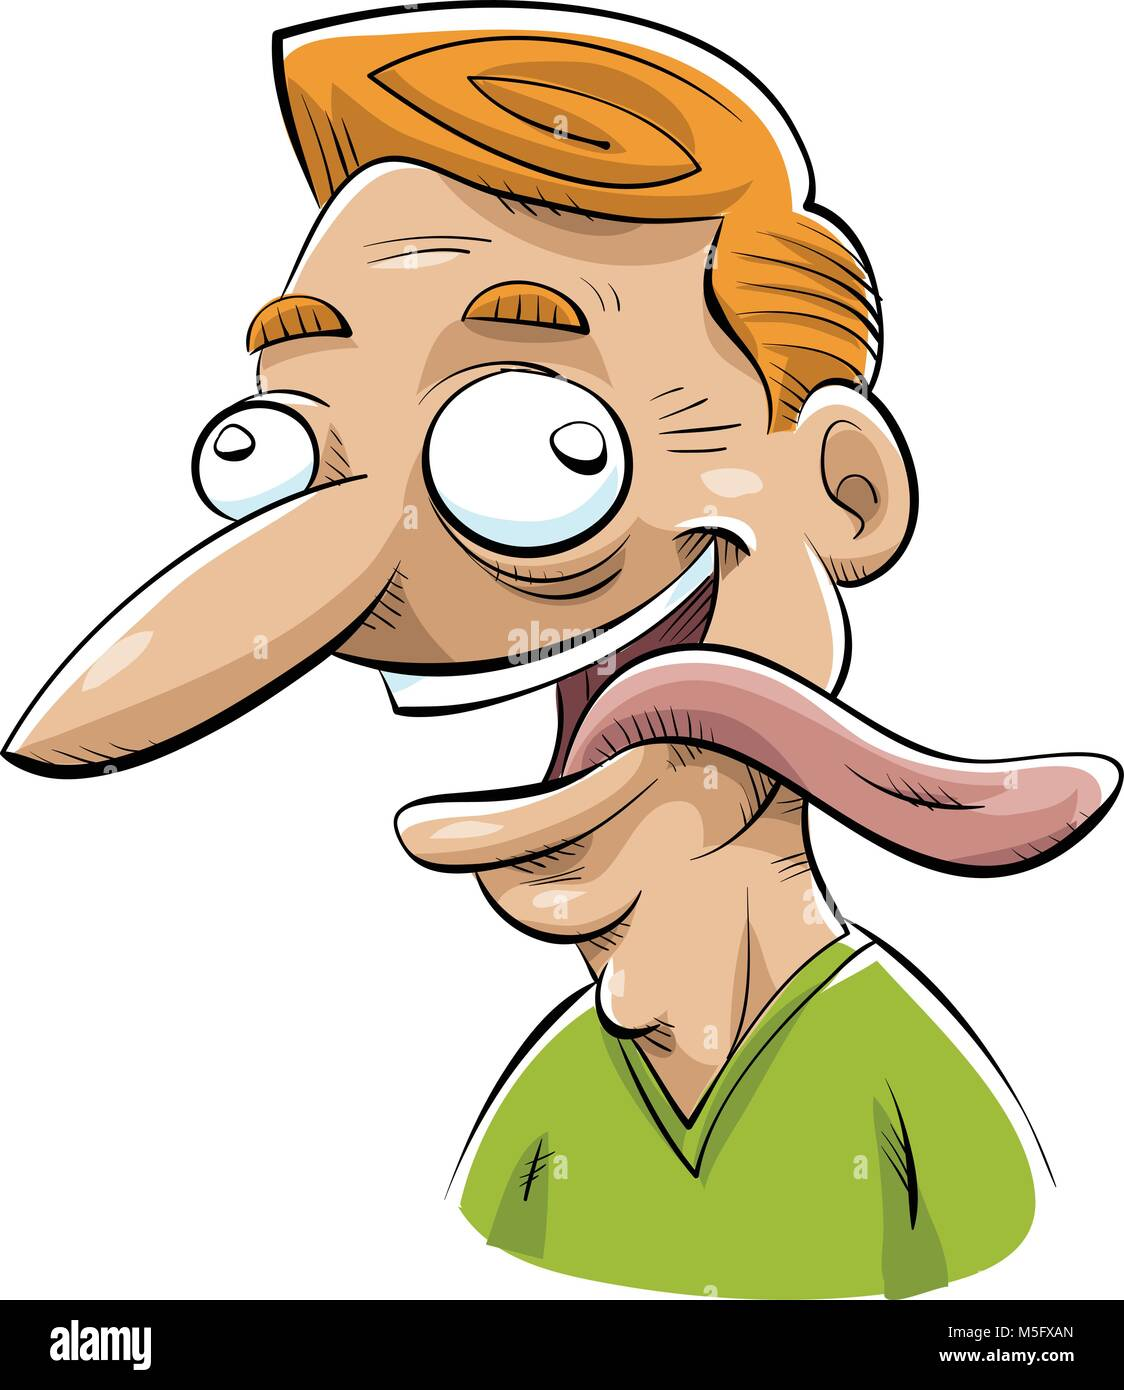 tongue out cartoon stock photos tongue out cartoon stock images rh alamy com cartoon sticking tongue out gif cartoon girl sticking out tongue